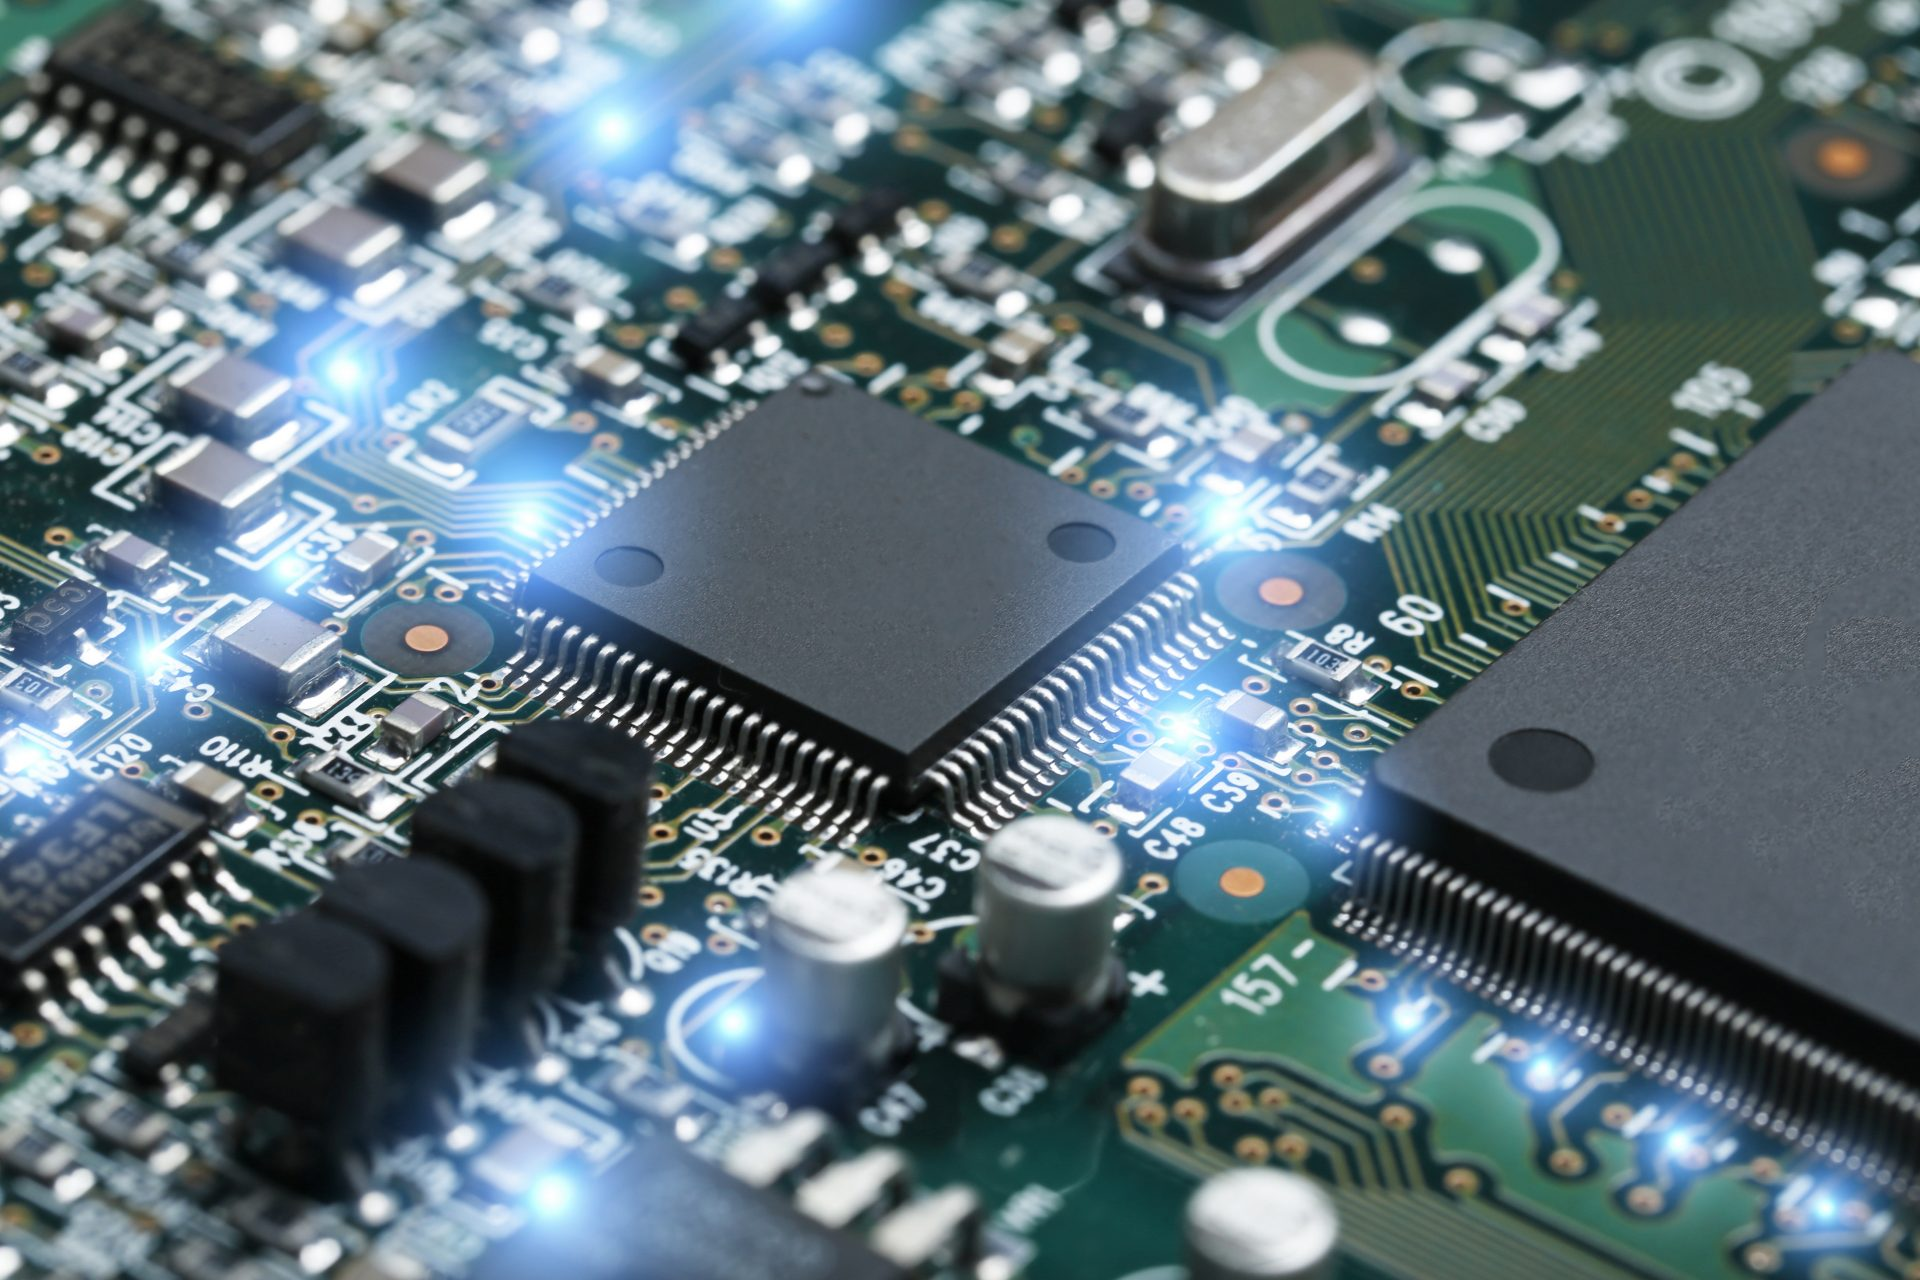 a close up of a circuit board including a microchip